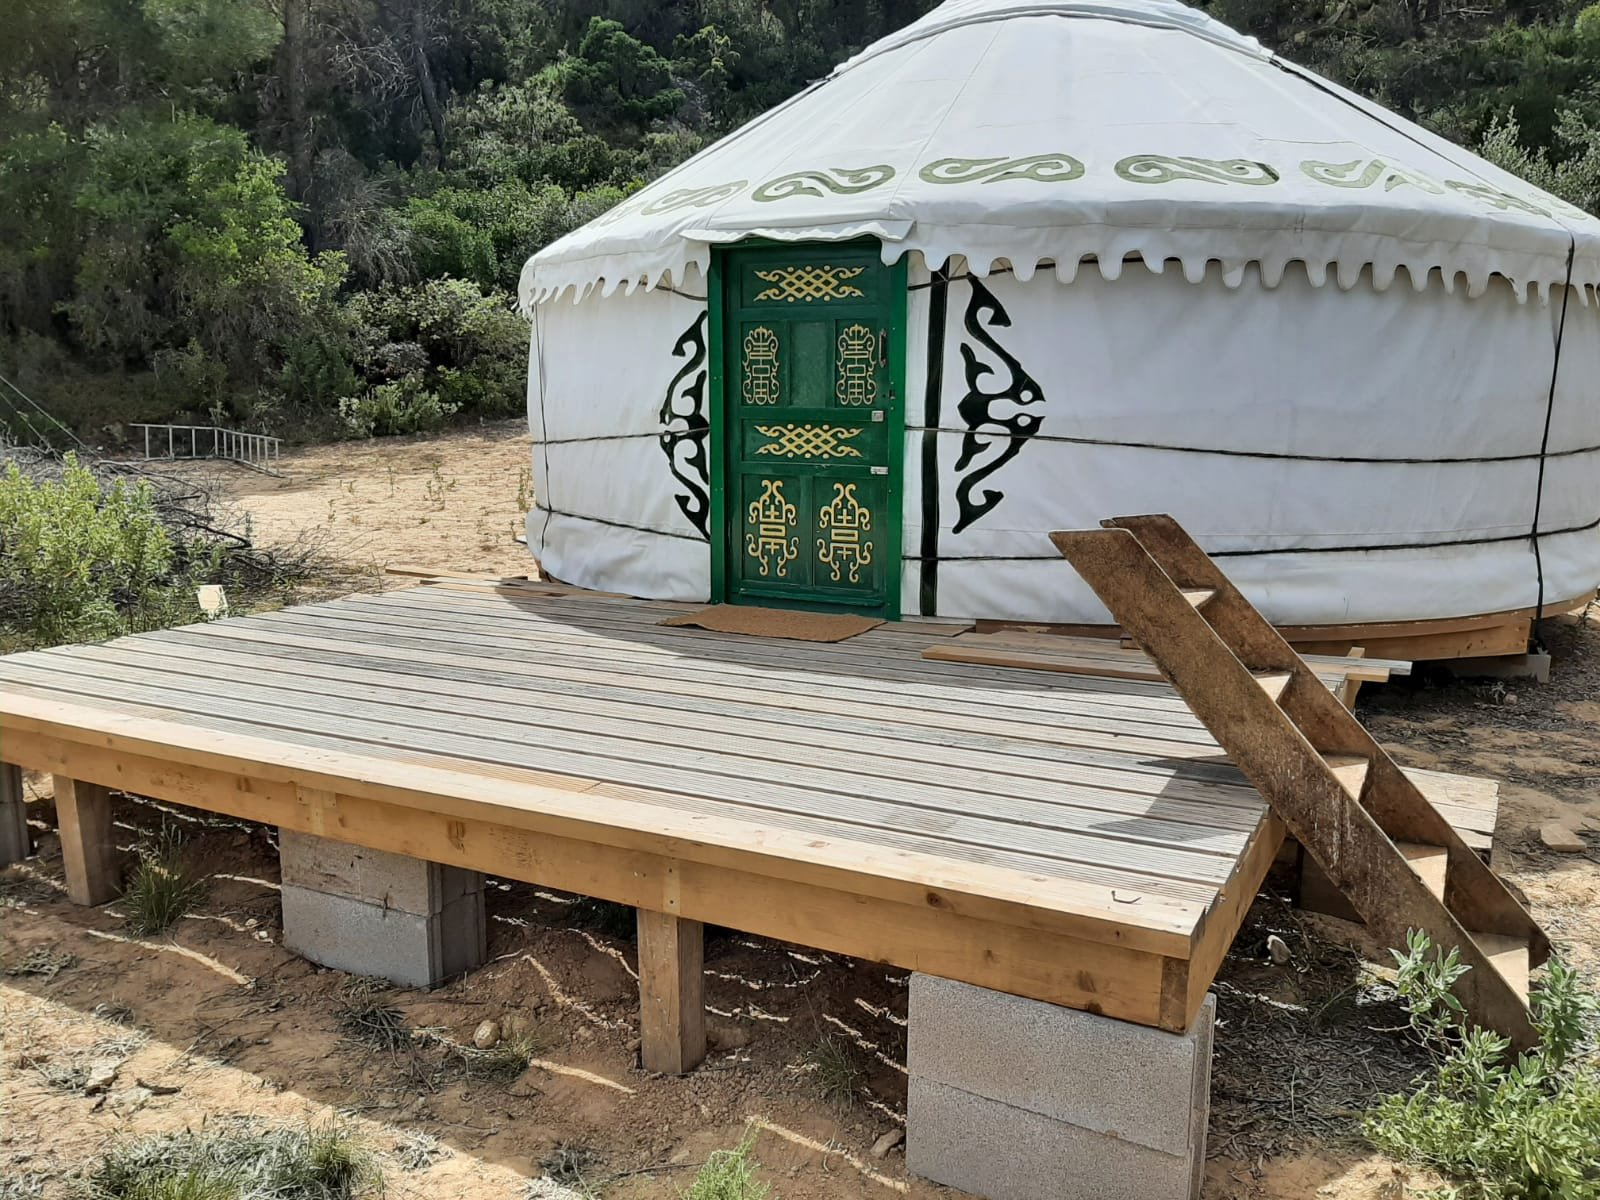 The amazing and unbelievable story behind the Freedom Farm Mongolian Yurt